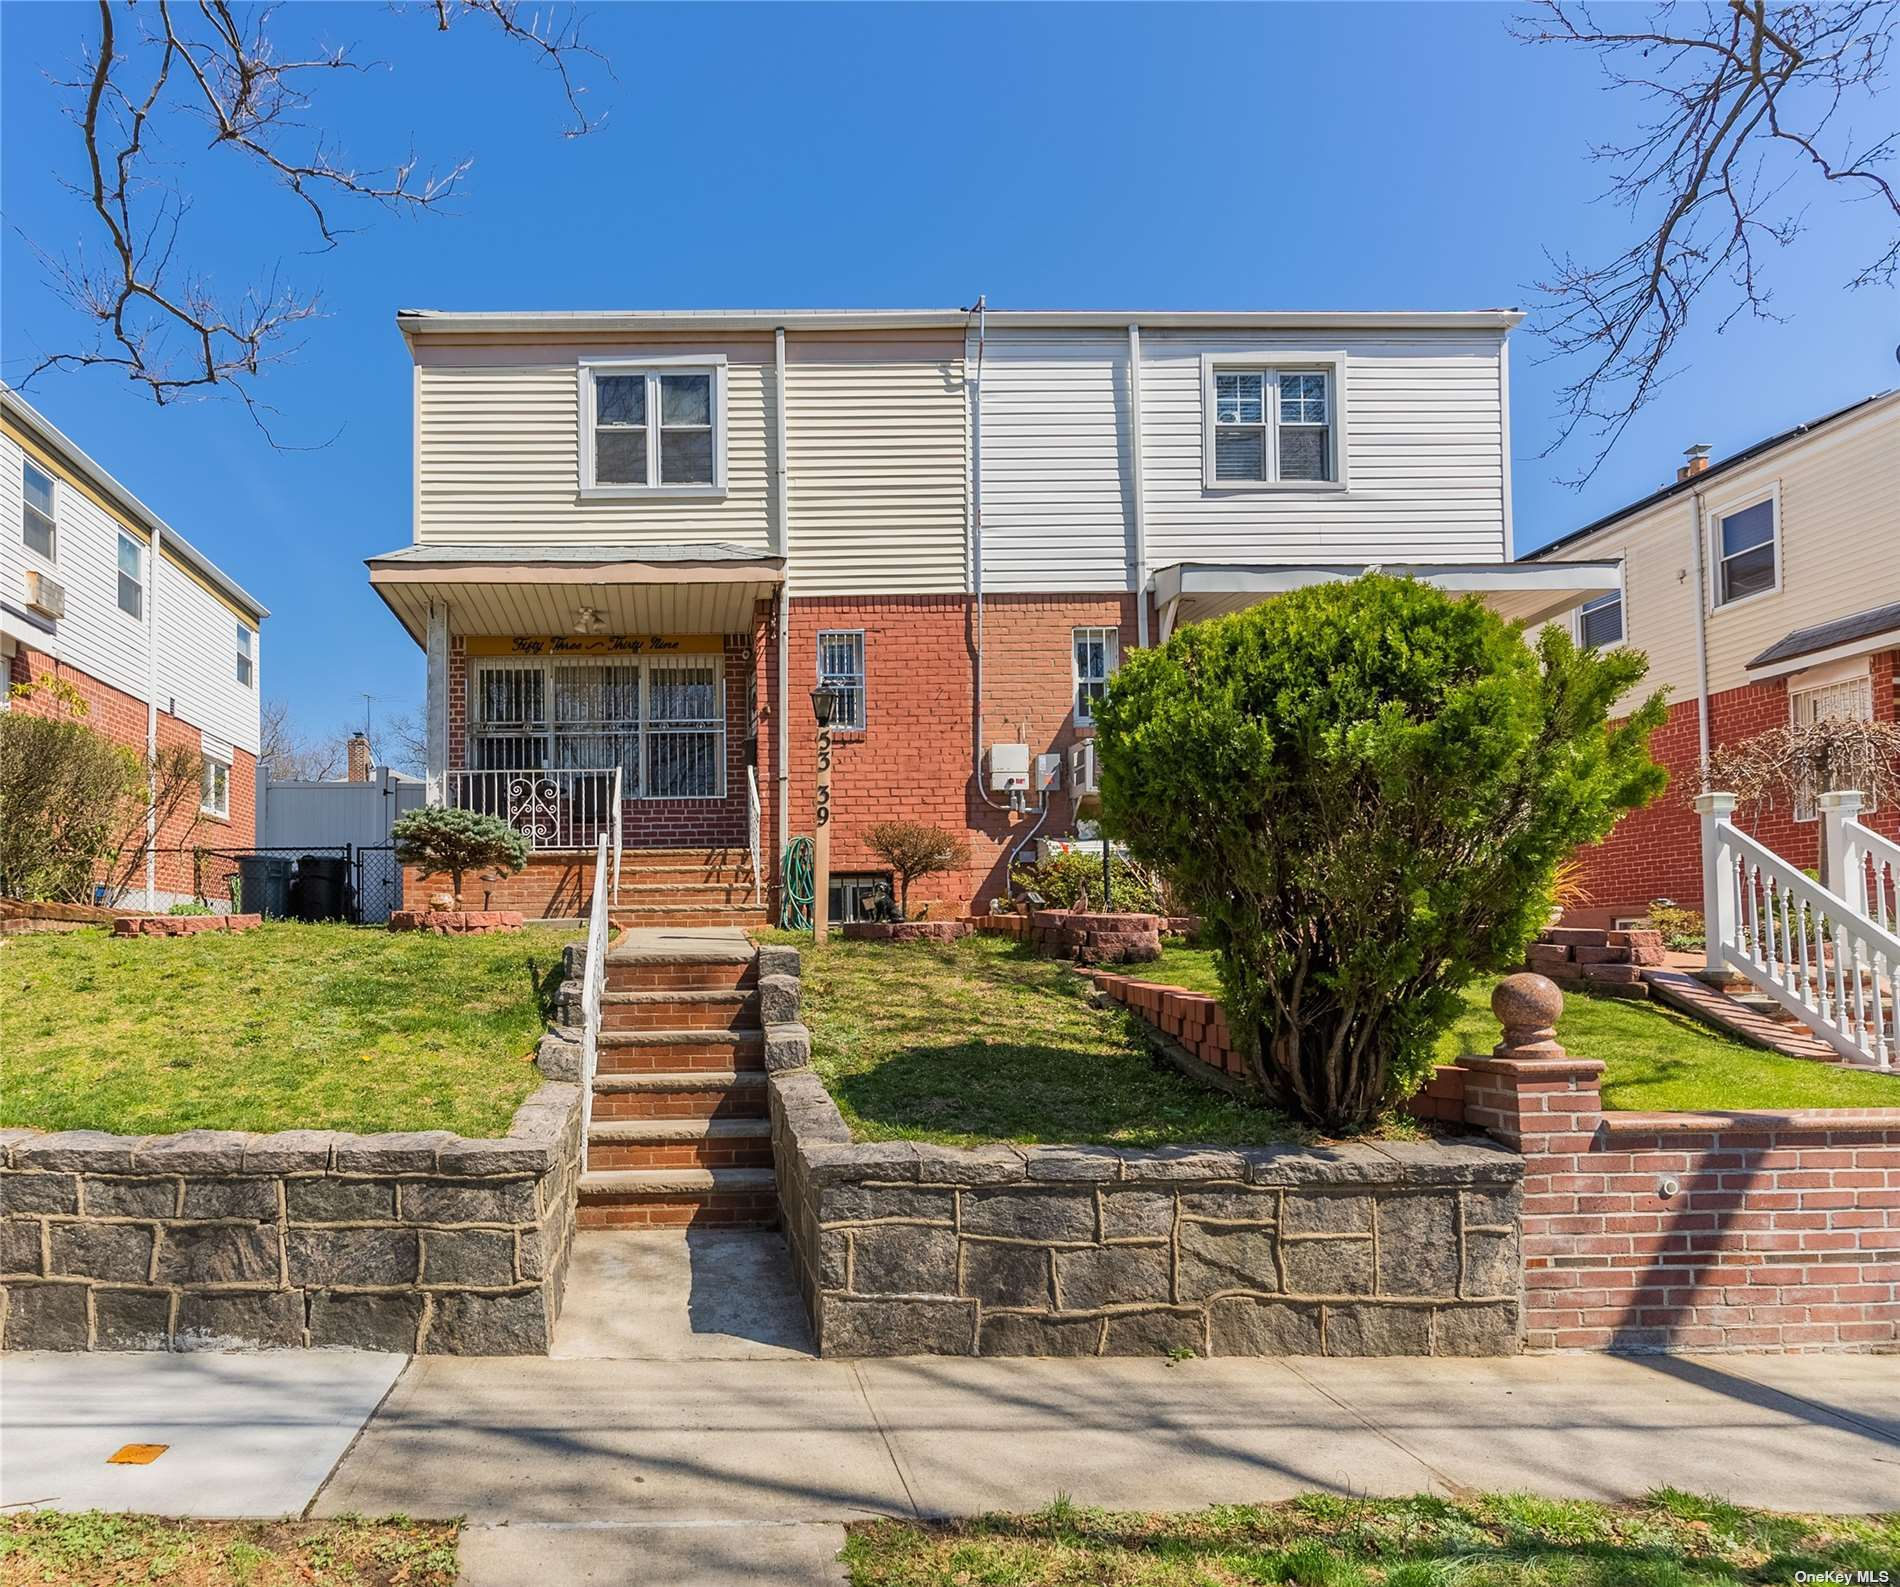 53-39 CLEARVIEW EXPRESSWAY, BAYSIDE, NY 11364